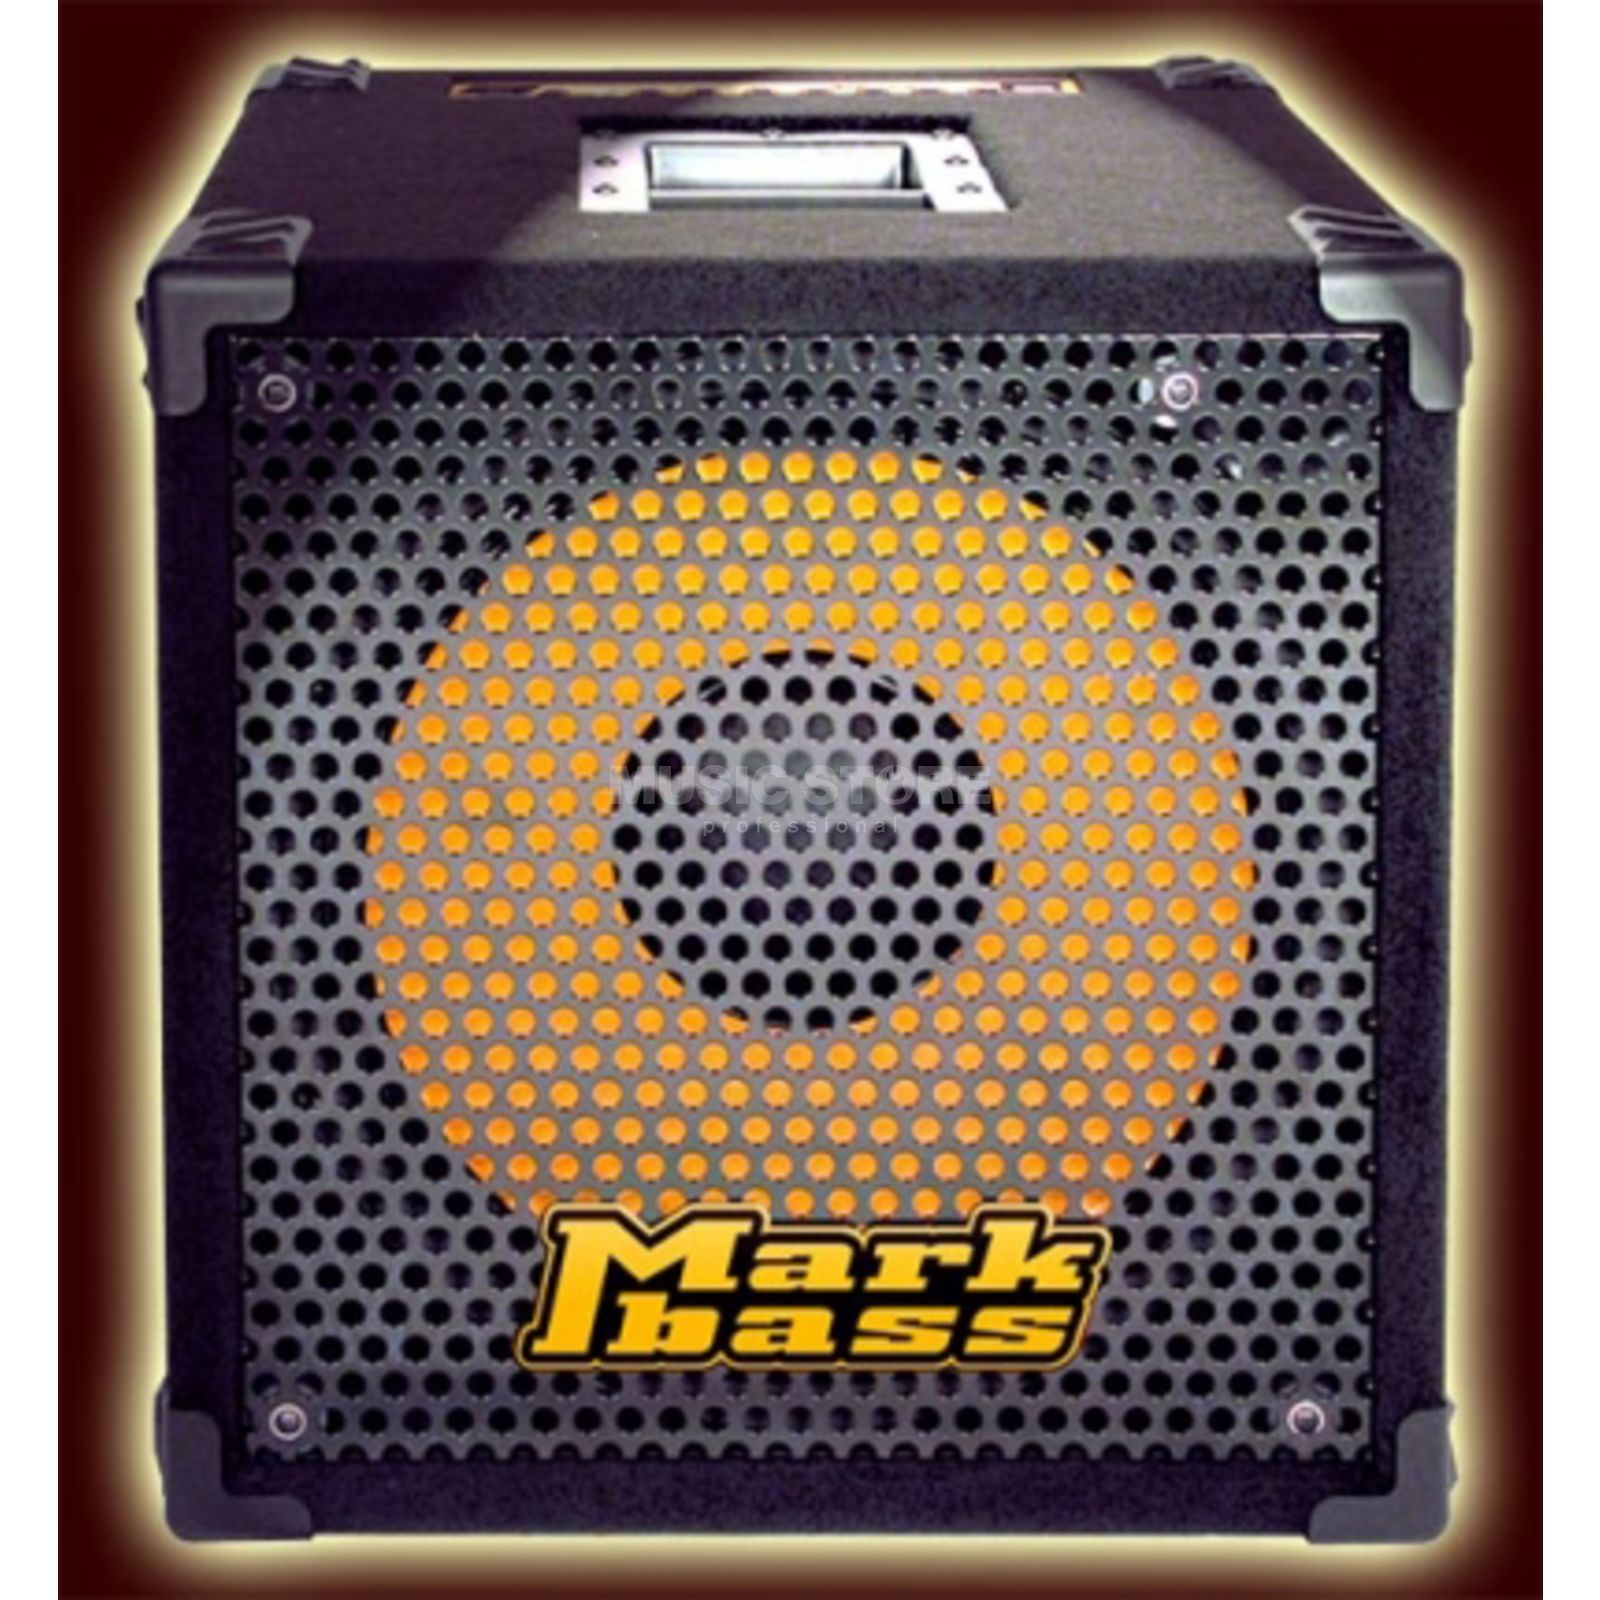 Mark Bass MINI CMD 151 P Bass Guitar Amp  Combo   Product Image